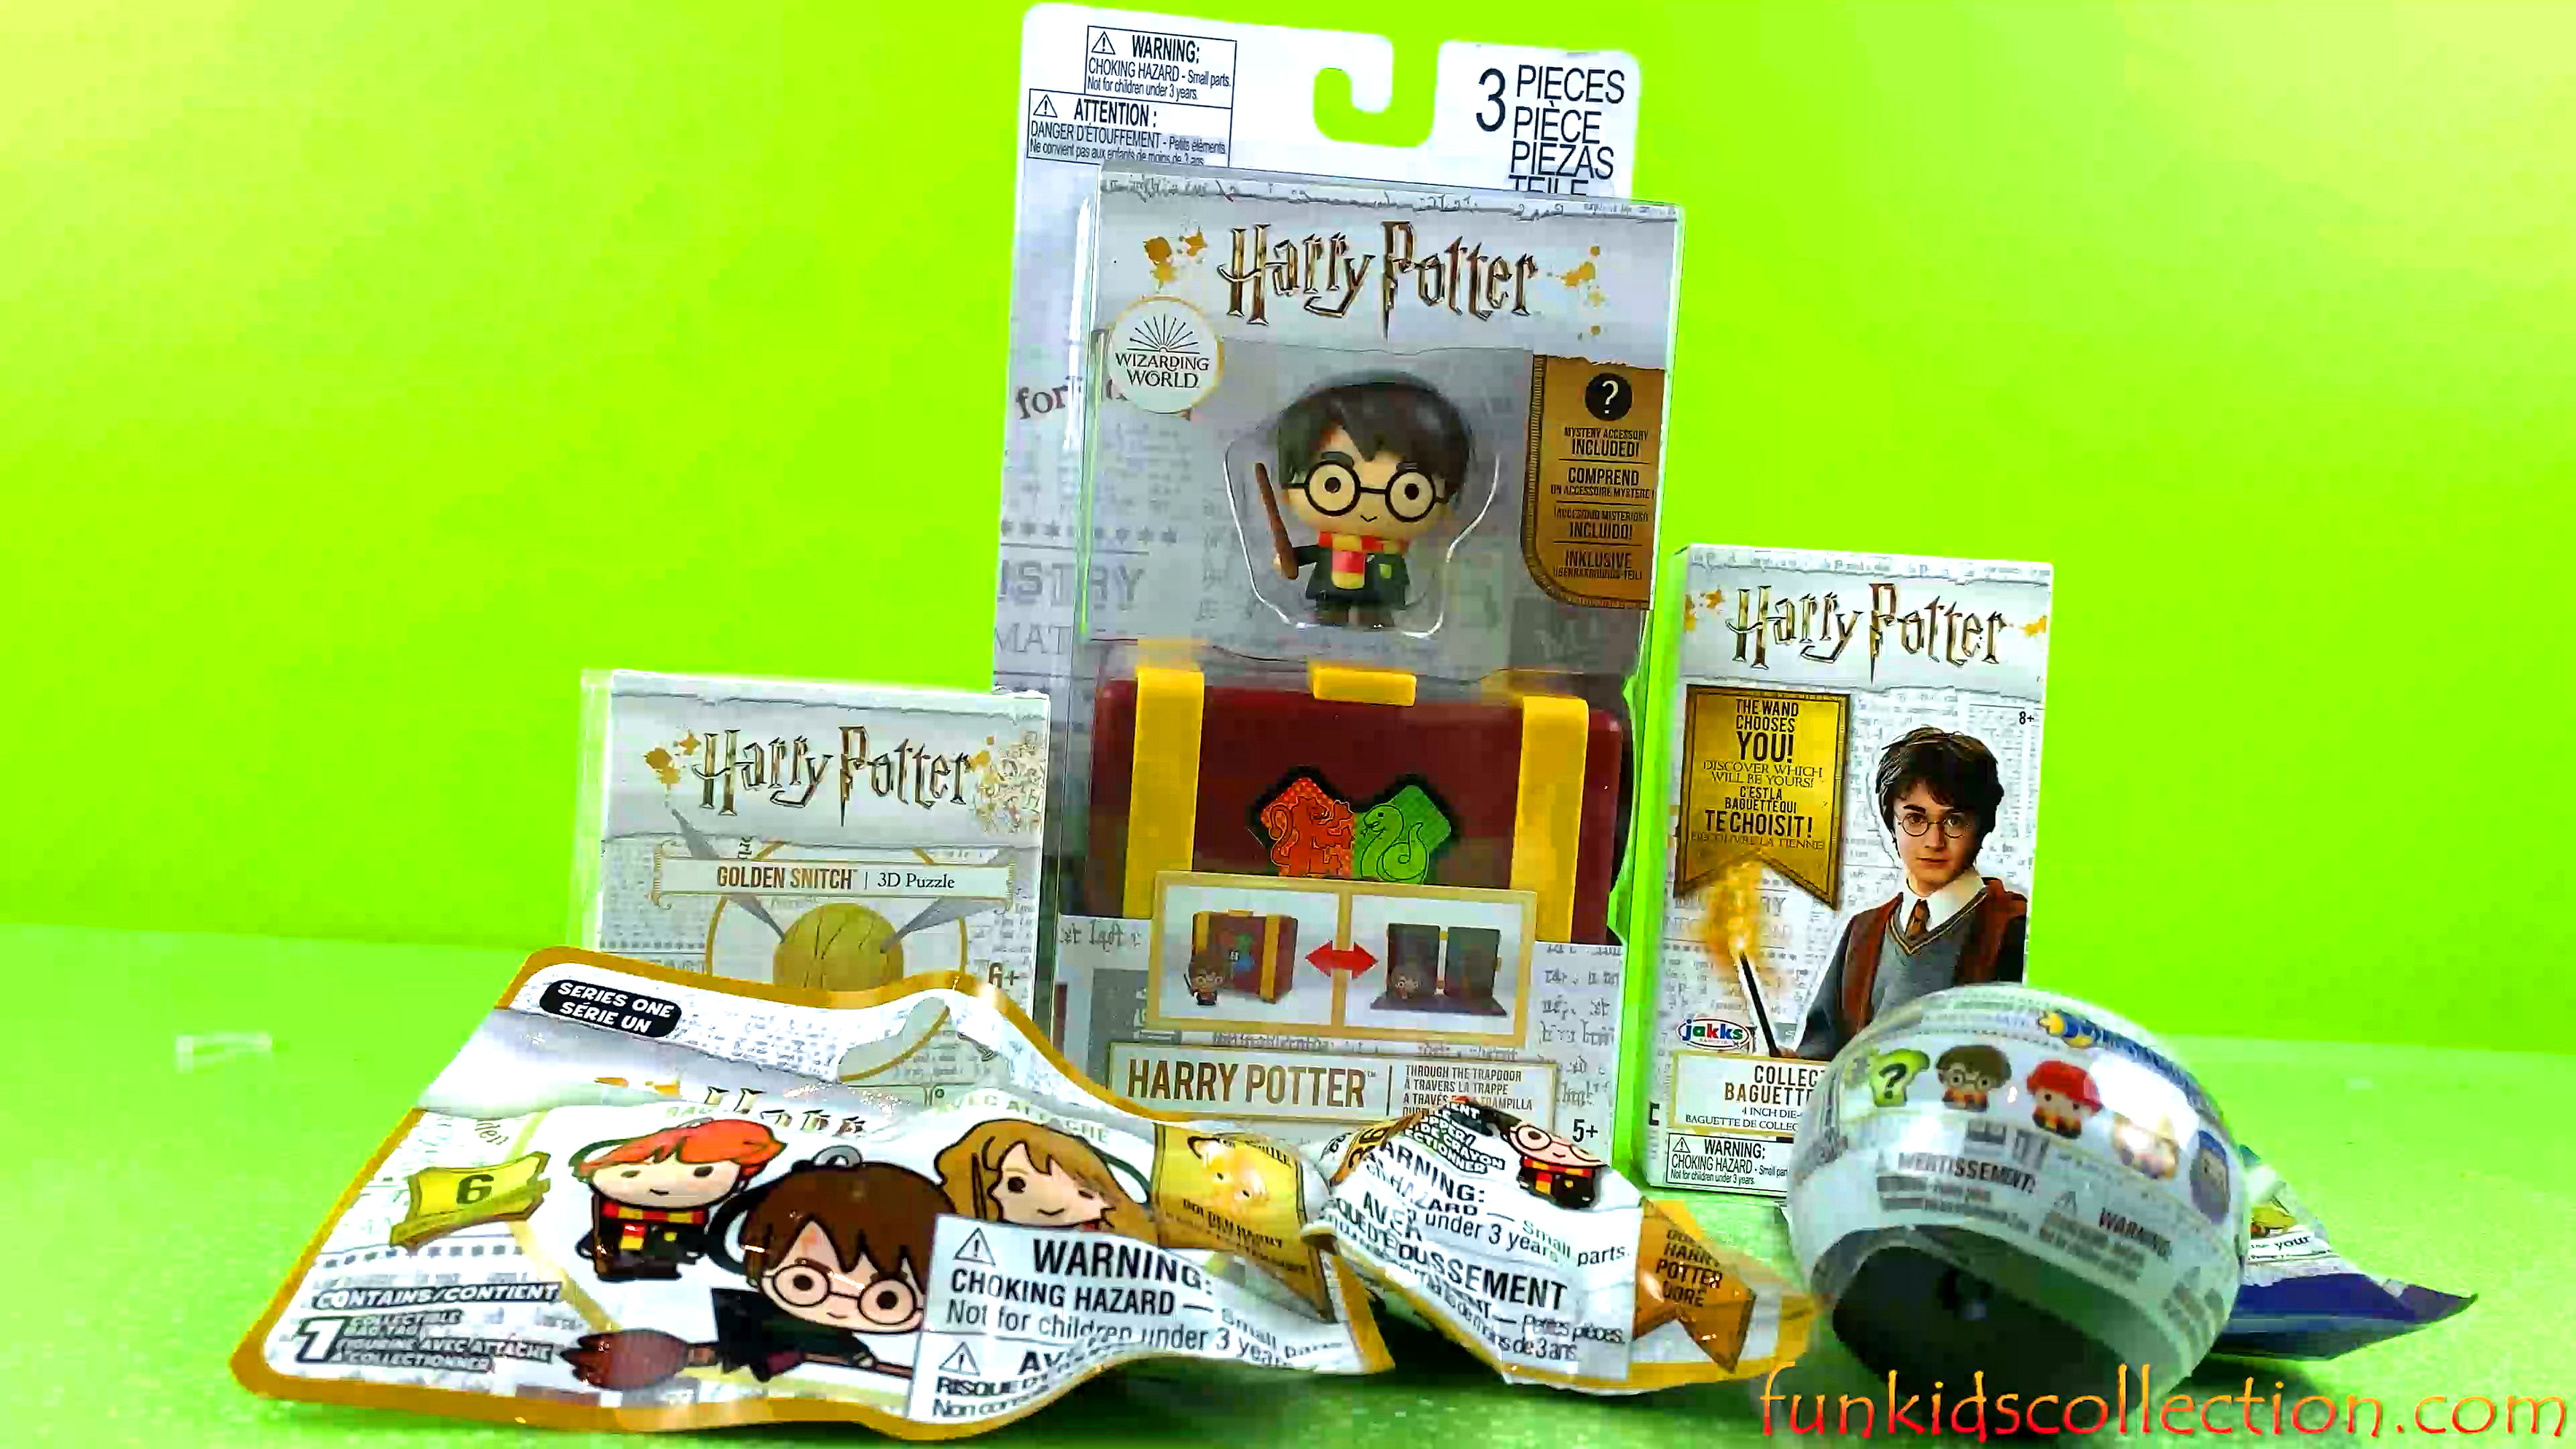 Harry Potter Toy Surprises | Harry Potter Golden Snitch Harry Potter Blind Bags Harry Potter Wand